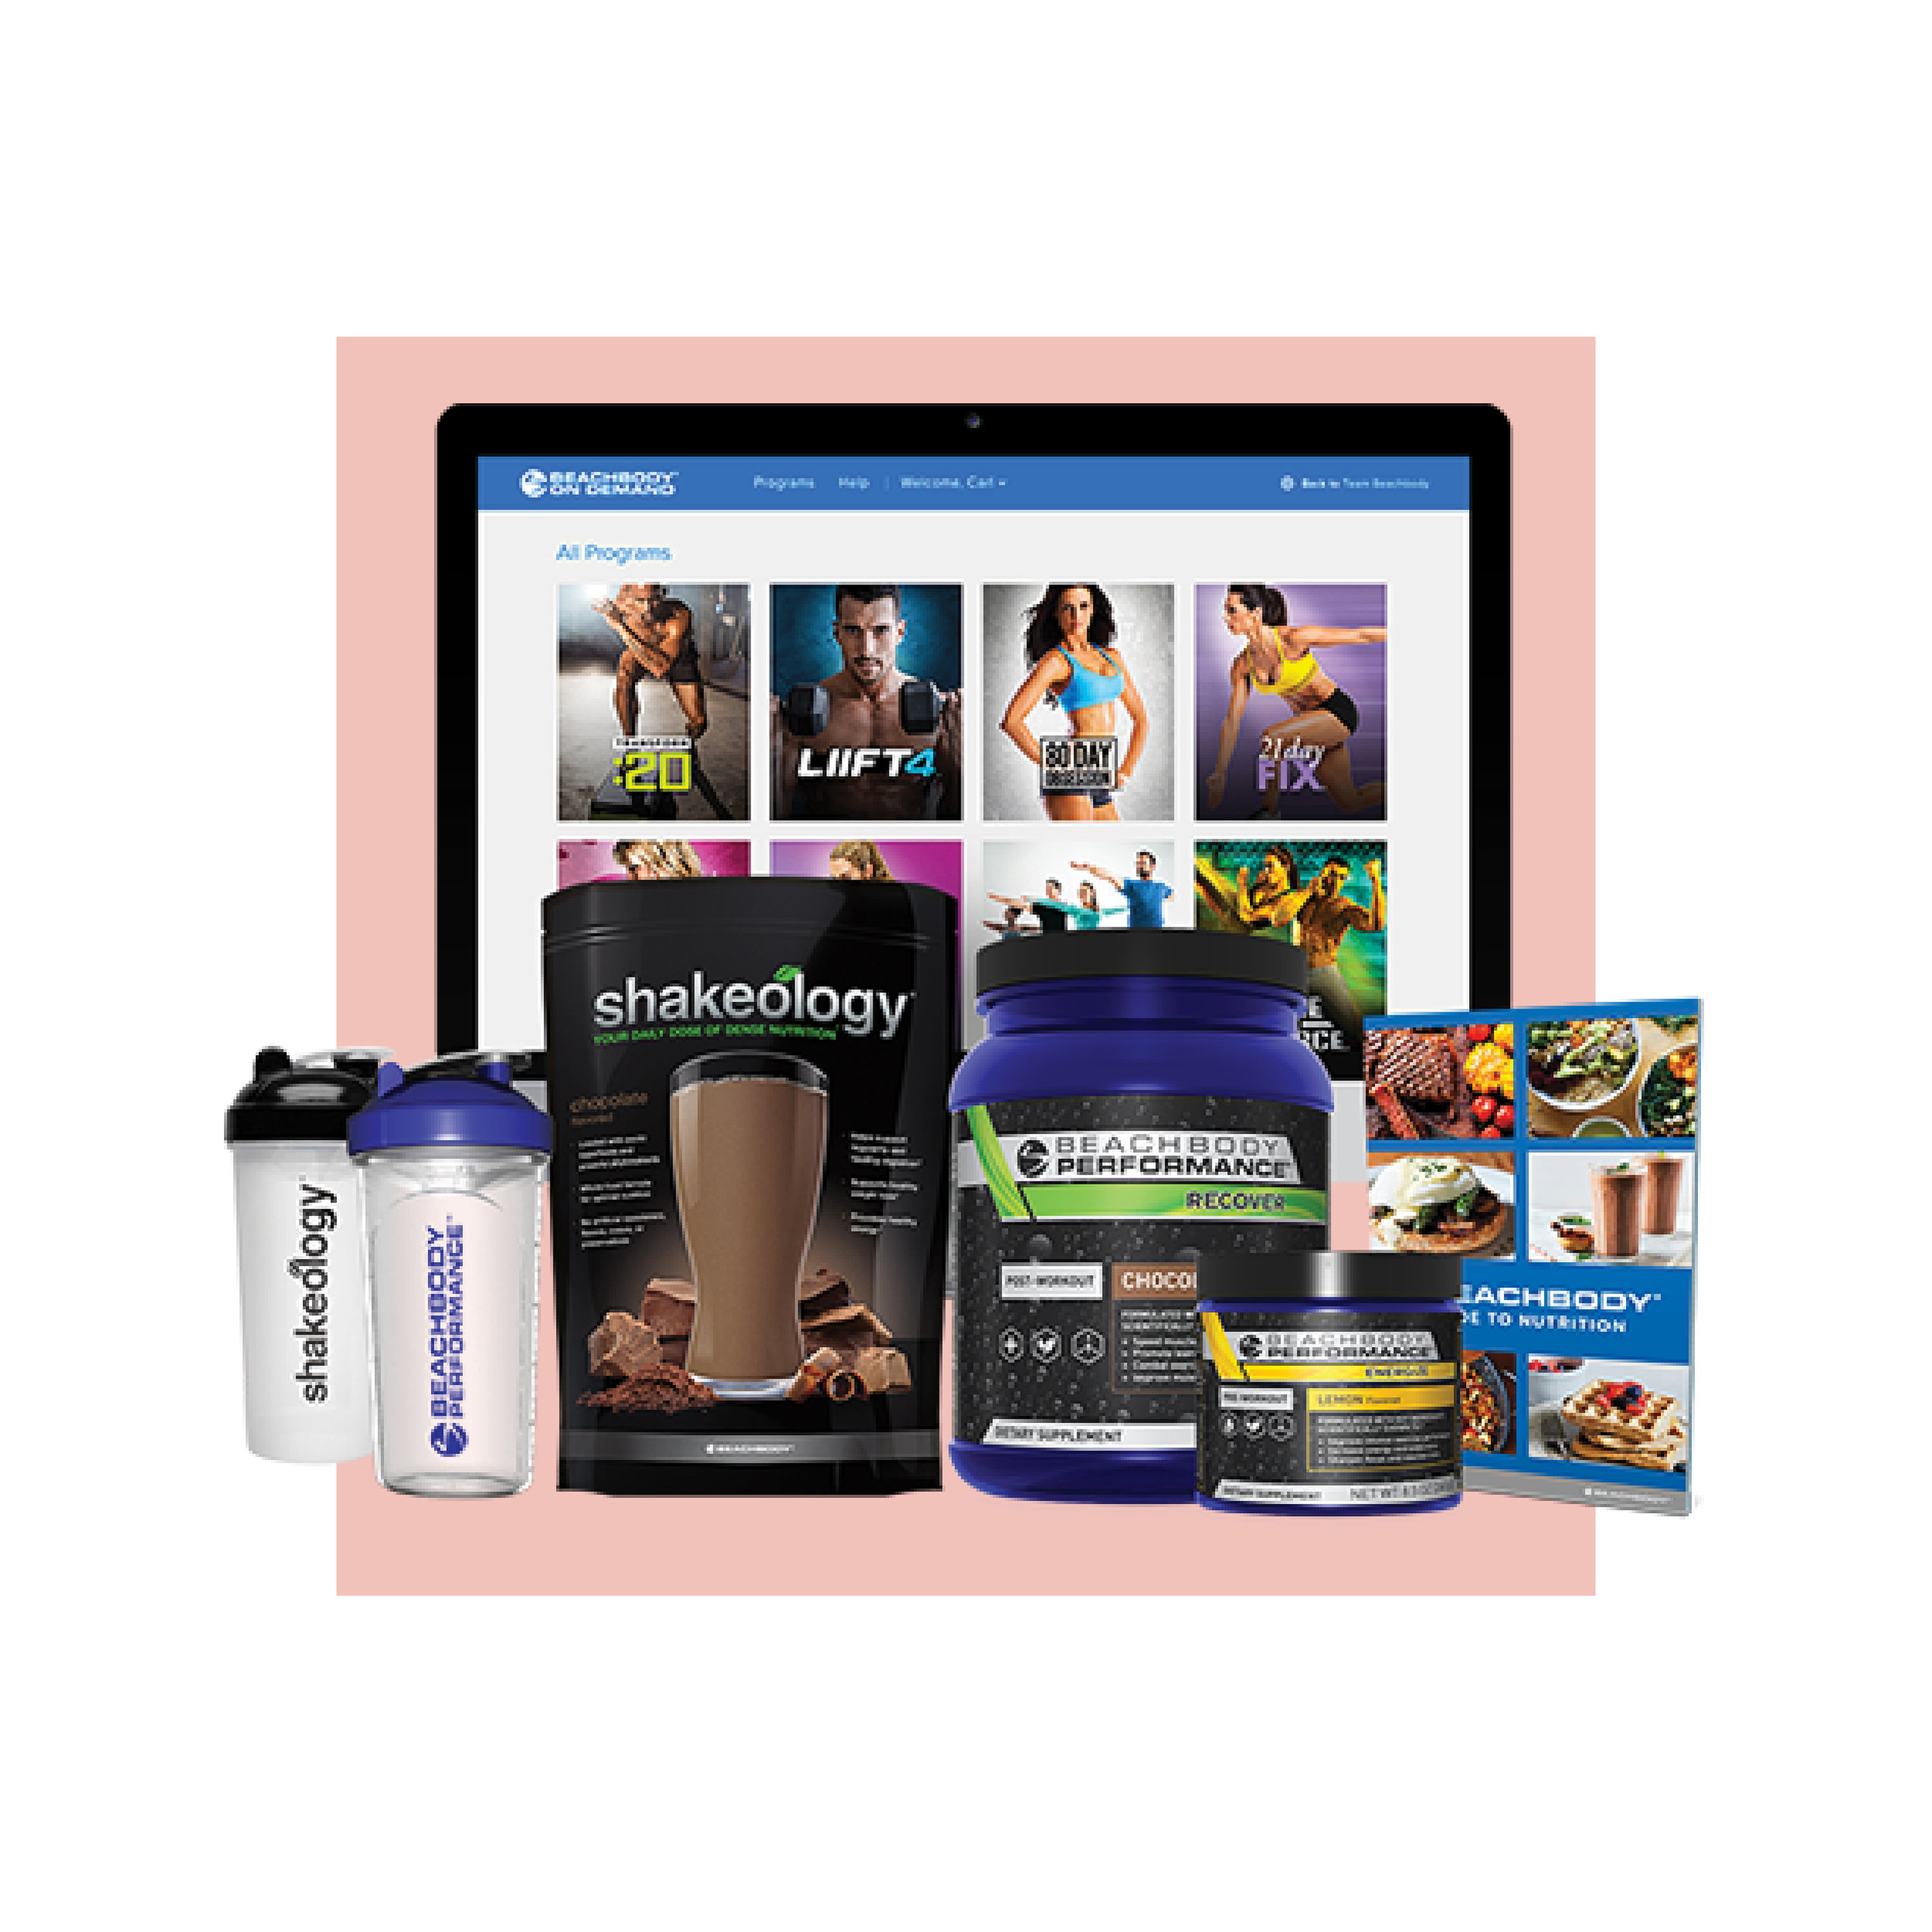 DELUXE CHALLENGE PACK -$220 - One year access to Beachbody on Demand30-day supply of Shakeology1 tub of Energize (all natural pre-workout)1 tub of Recover (post-workout muscle recovery)Nutrition/meal prep guide and recipesTwo shaker cupsOne-on-one coaching and accountability group